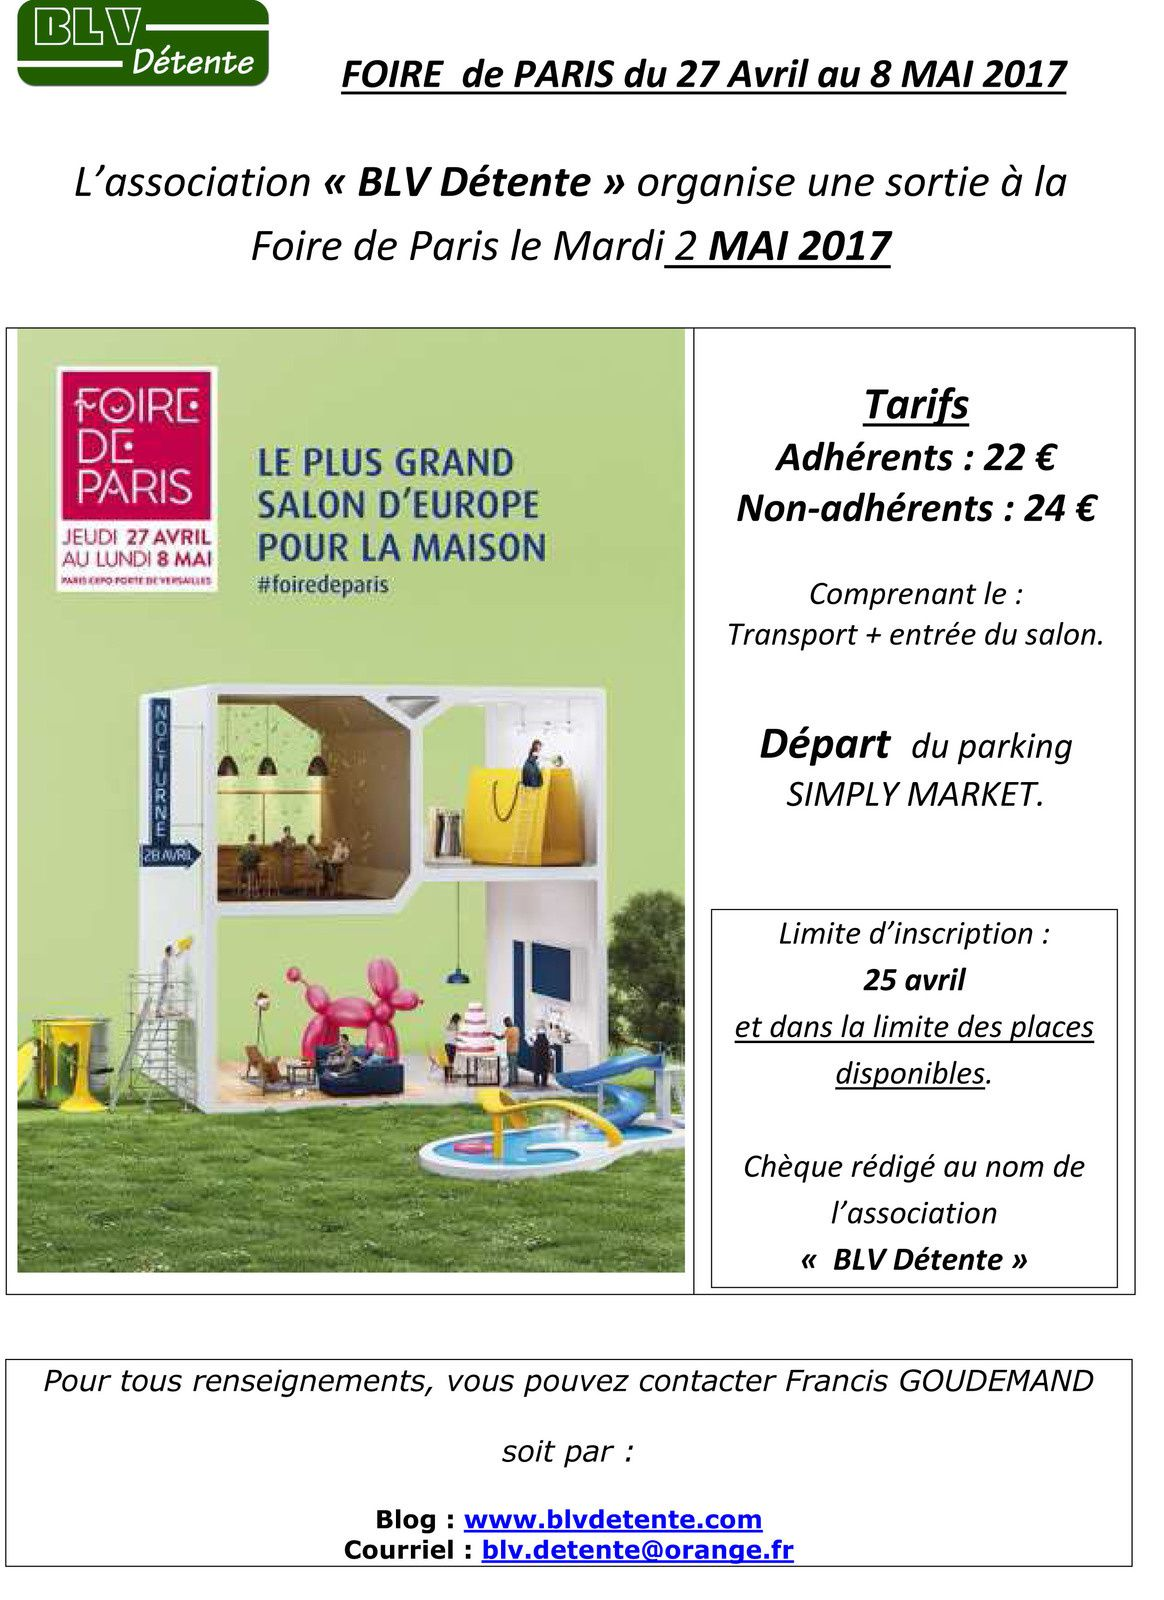 mardi 2 mai 2017 sortie d tente la foire de paris association blv d tente breuil le vert. Black Bedroom Furniture Sets. Home Design Ideas